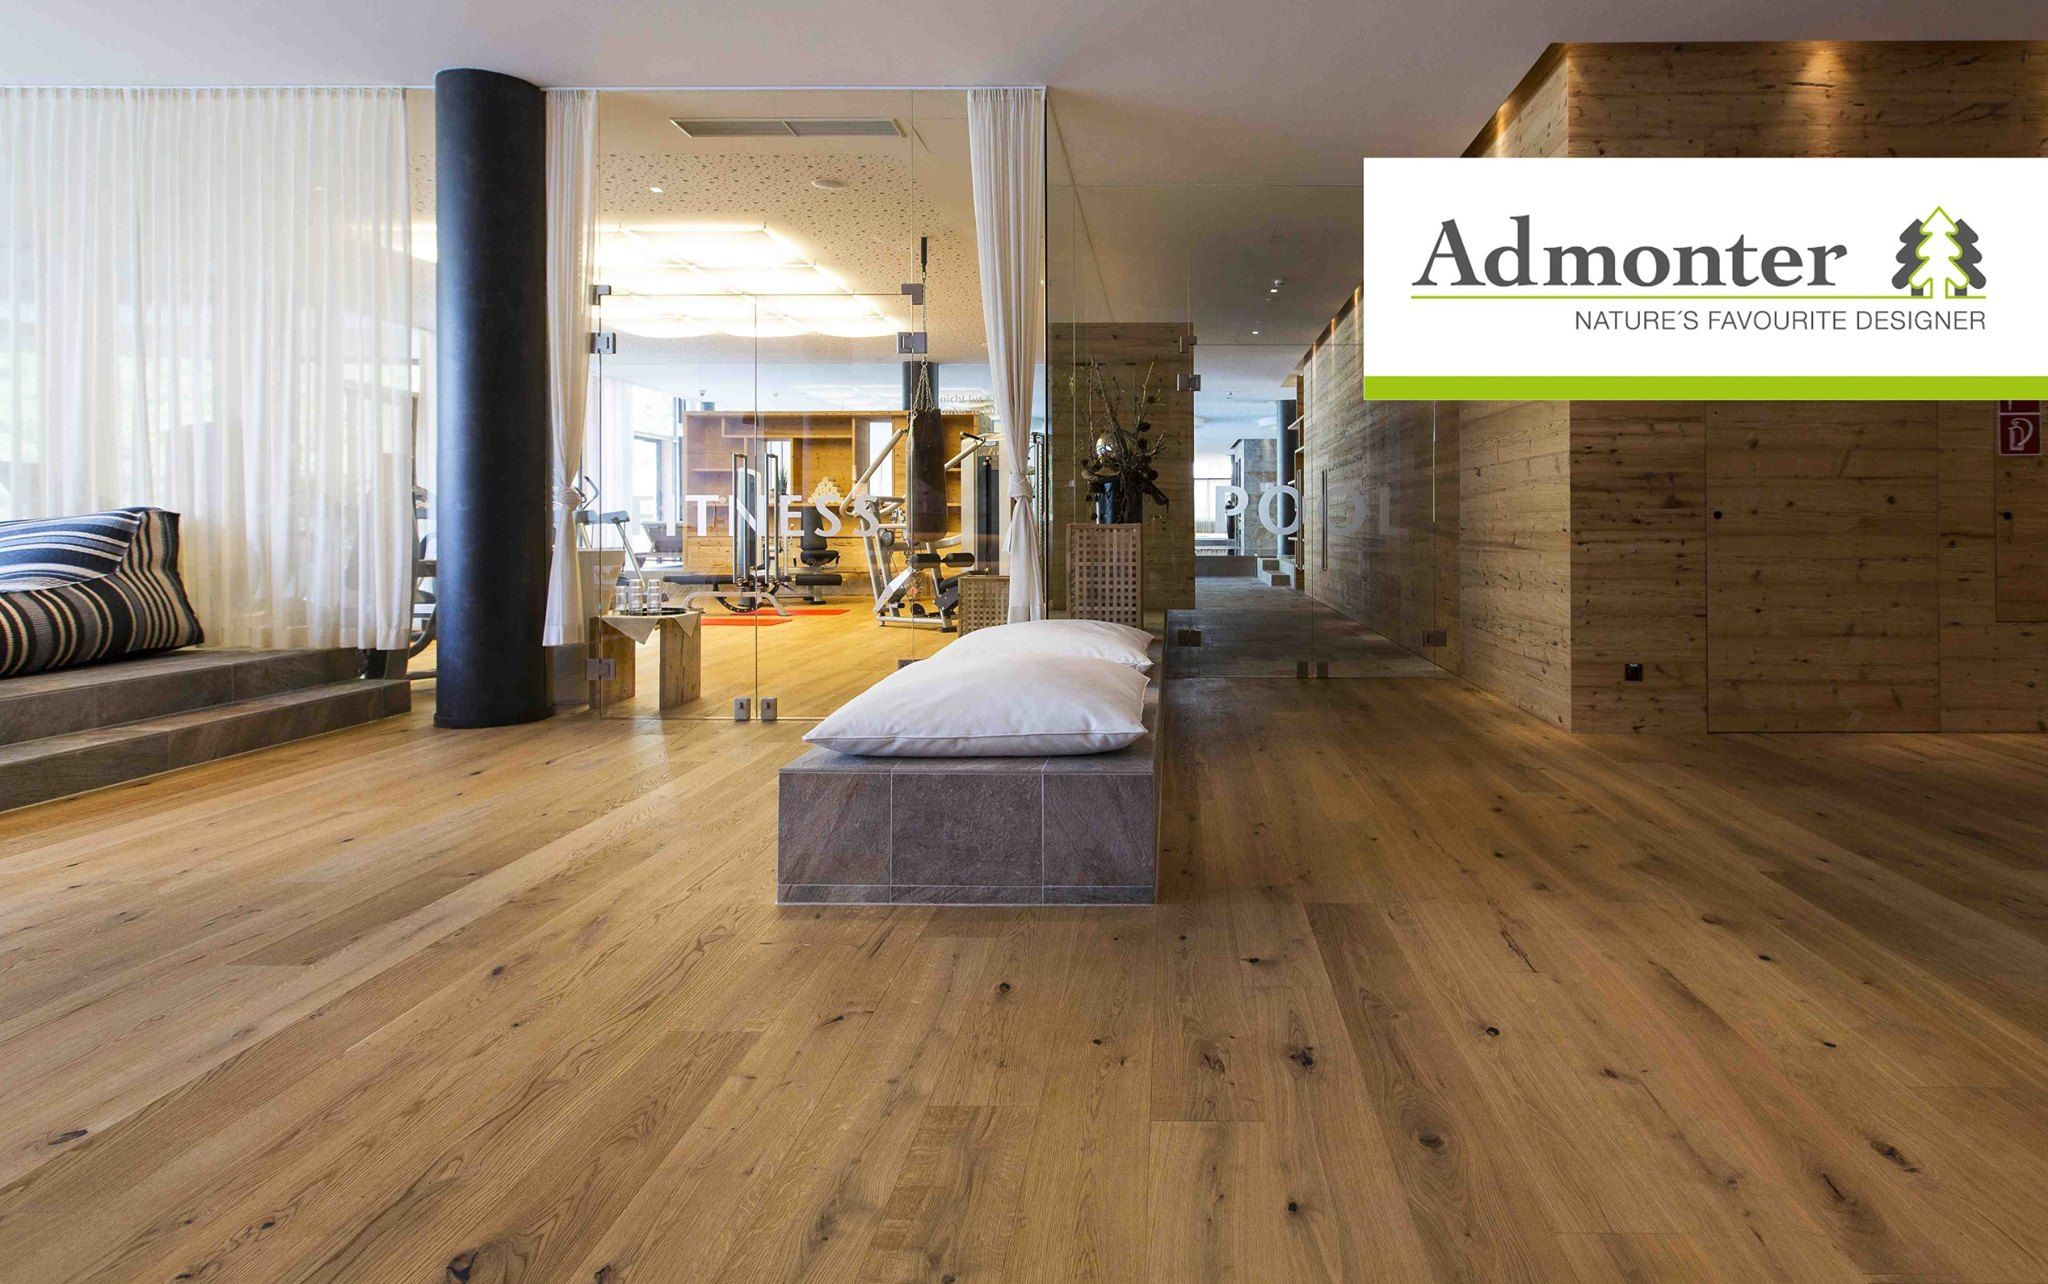 Pin by admonter holzindustrie ag on hotel interiors pinterest